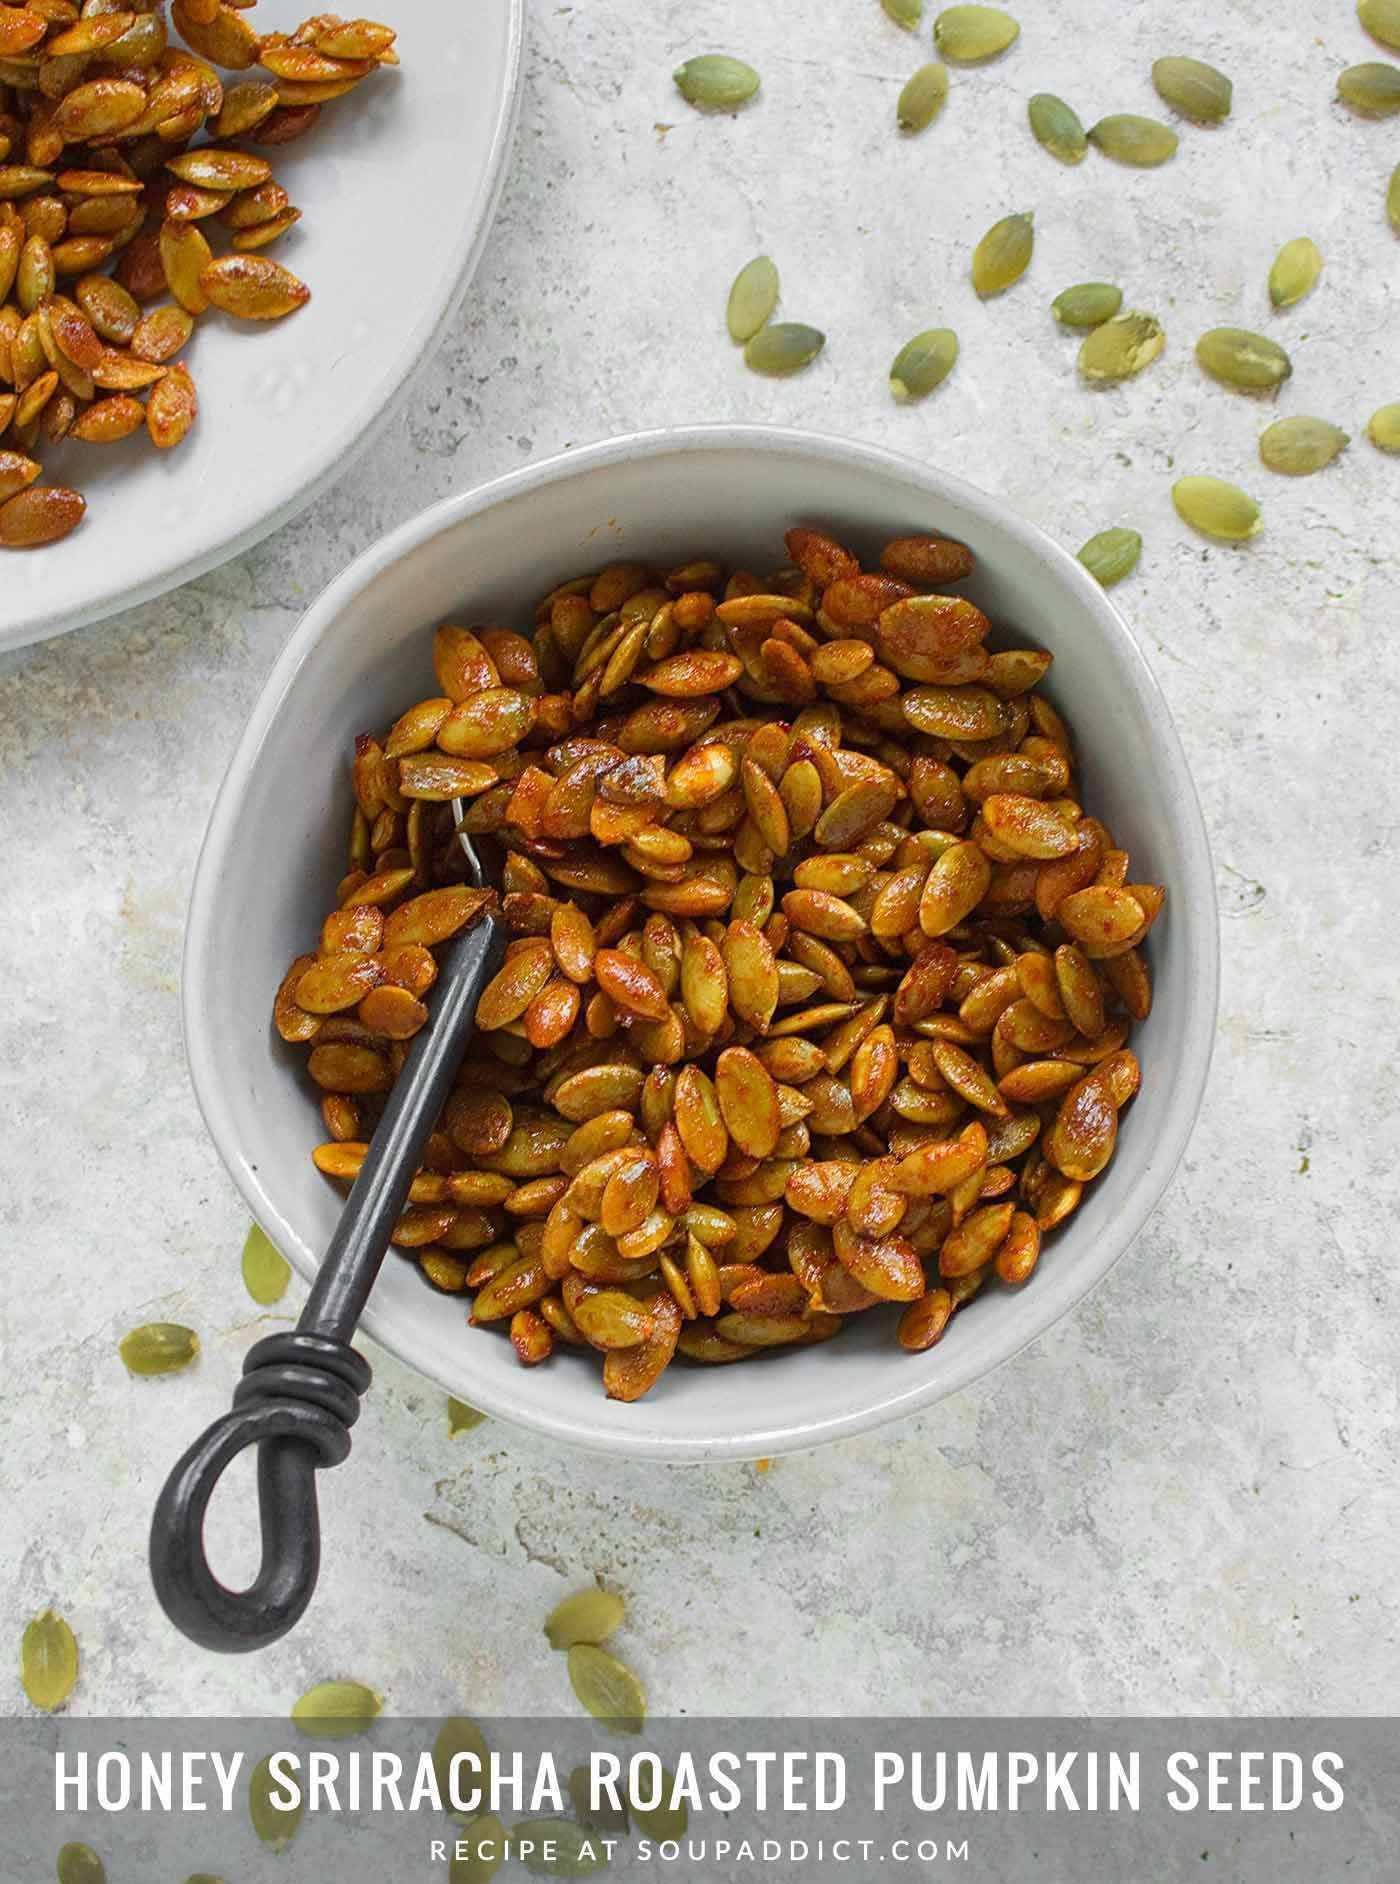 Honey Sriracha Roasted Pumpkin Seeds #roastedpumpkinseeds Sweet and spicy and completely irresistible, honey sriracha roasted pumpkin seeds are an addictive - but completely healthy - snack you can feel good about making at home. Recipe at SoupAddict.com #pumpkinseedsrecipe Honey Sriracha Roasted Pumpkin Seeds #roastedpumpkinseeds Sweet and spicy and completely irresistible, honey sriracha roasted pumpkin seeds are an addictive - but completely healthy - snack you can feel good about making at h #roastedpumpkinseedsrecipe